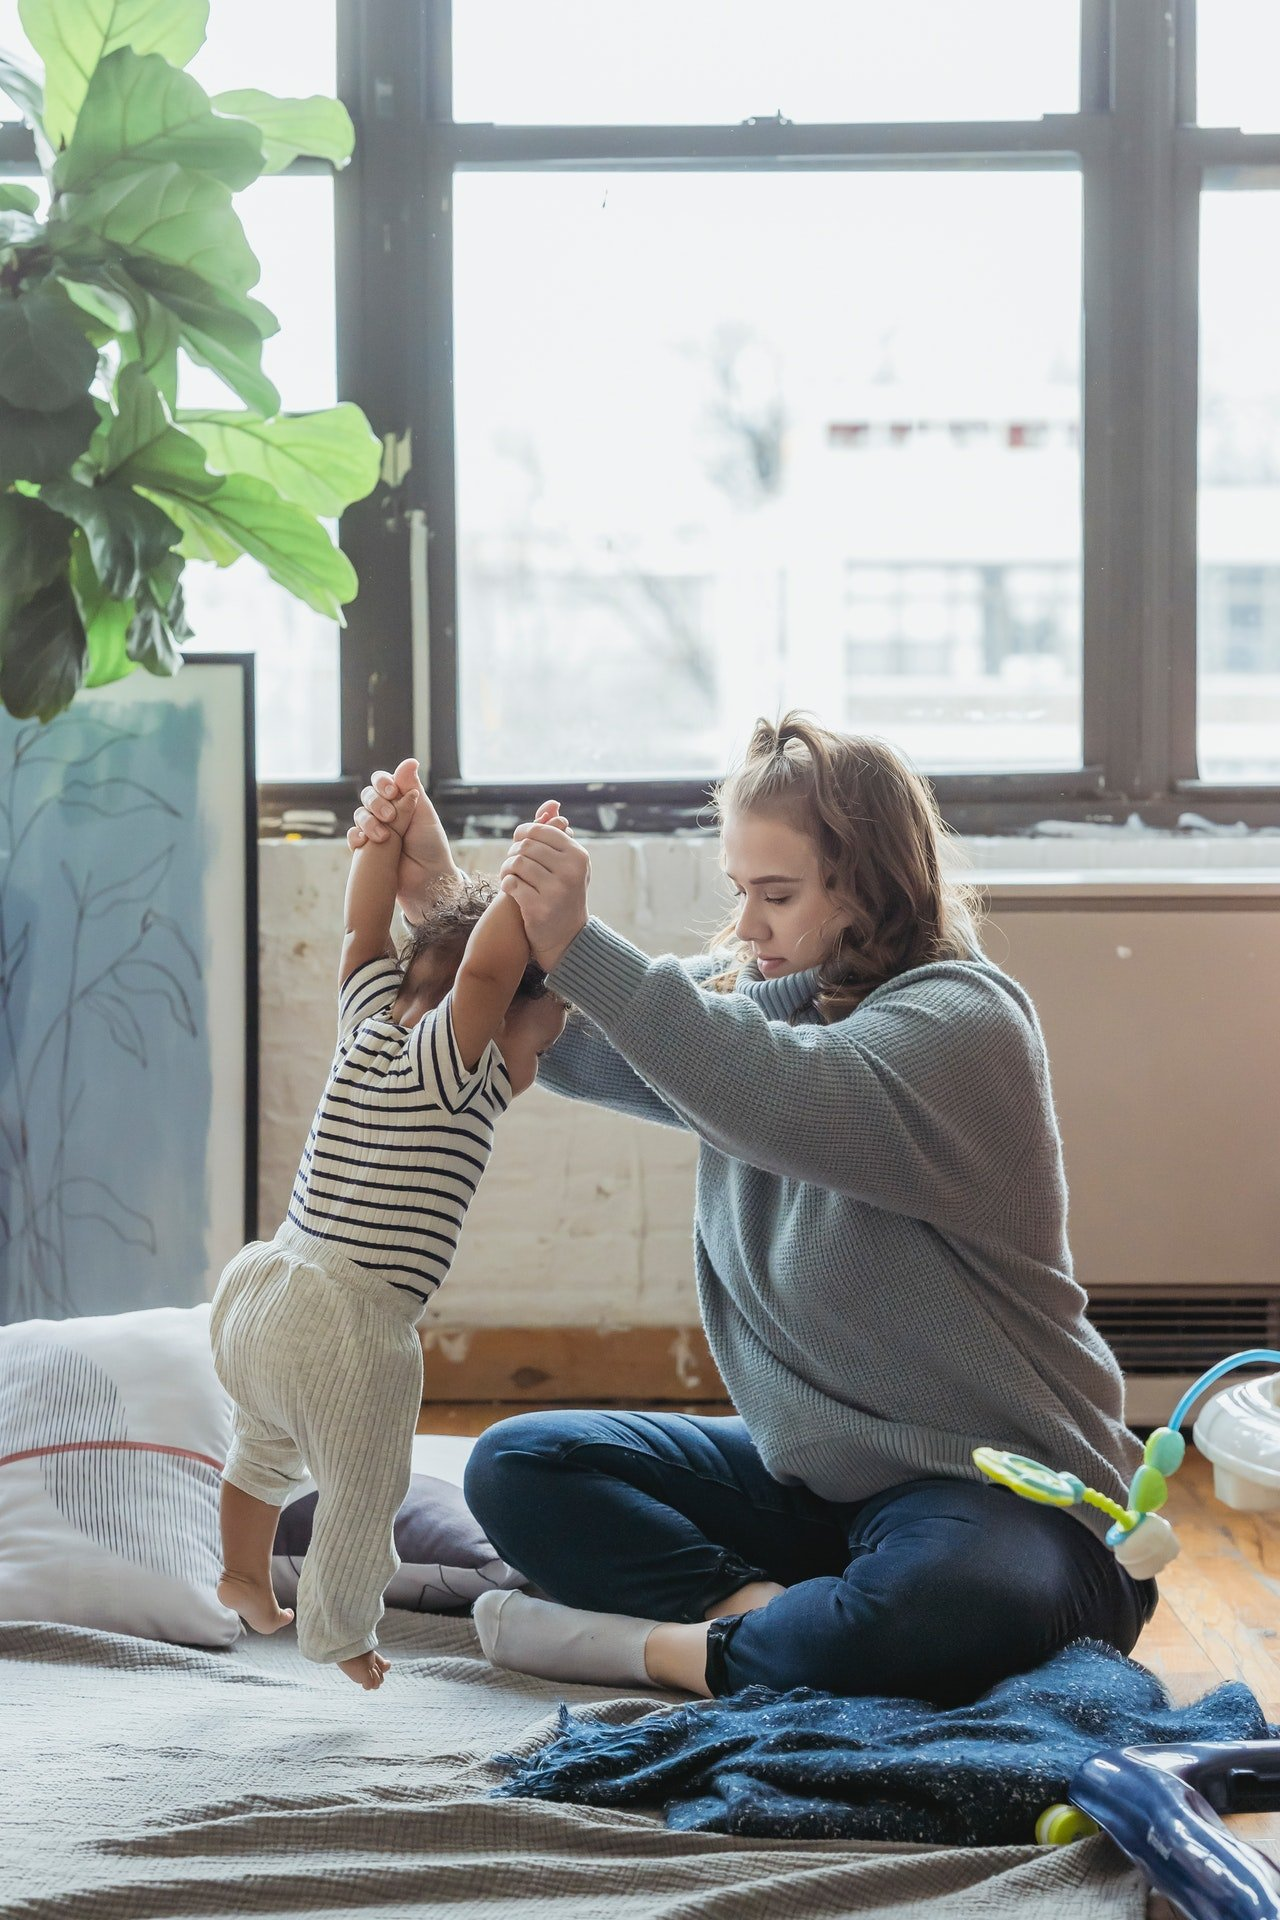 Woman playing with her baby on the floor | Source: Pexels